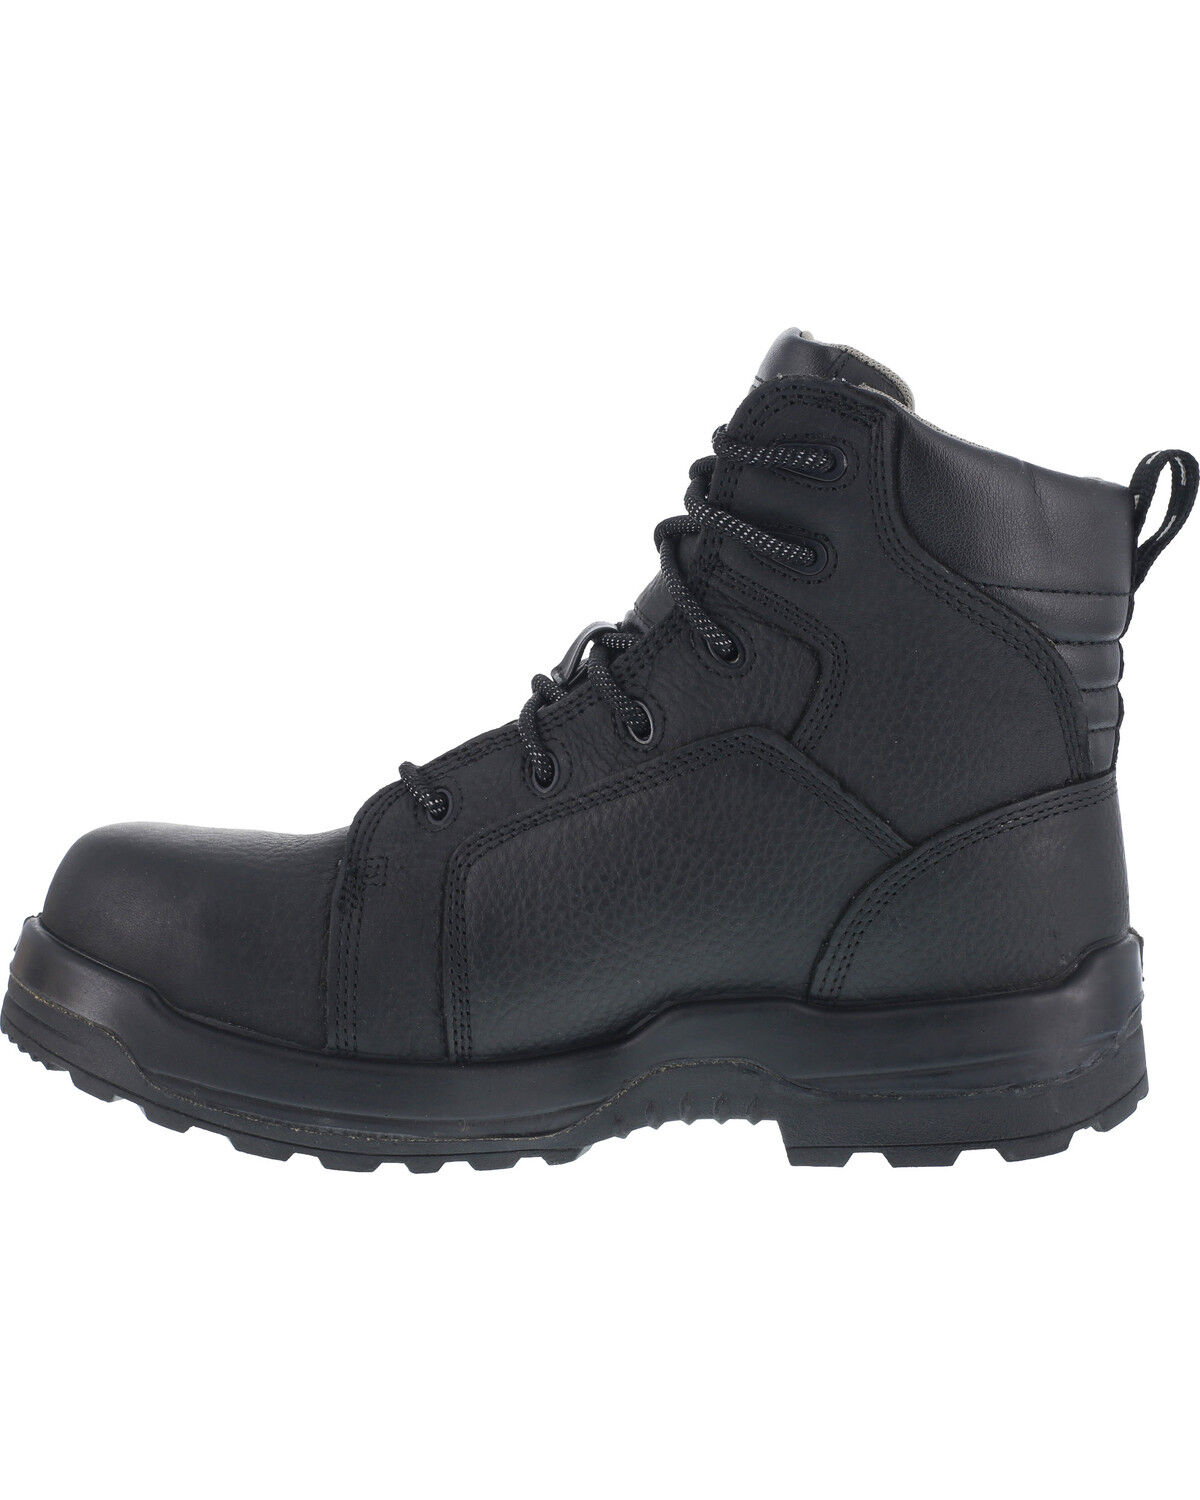 Work Boots - Composite Toe   Boot Barn